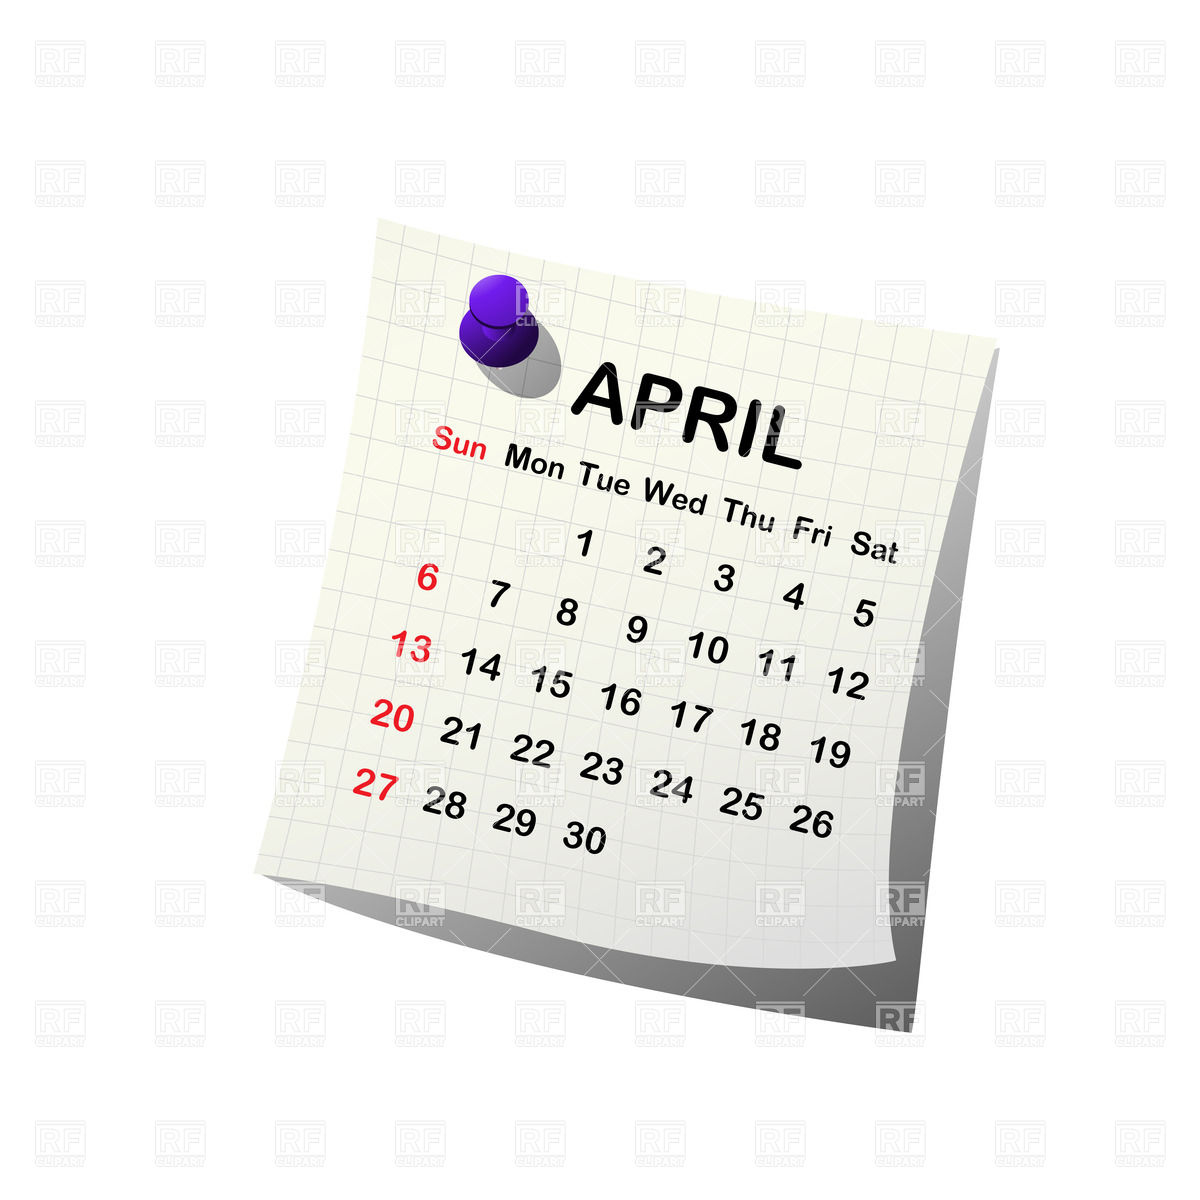 April 2014 calendar clipart vector stock 2014 paper calendar - April Vector Image #27907 – RFclipart vector stock